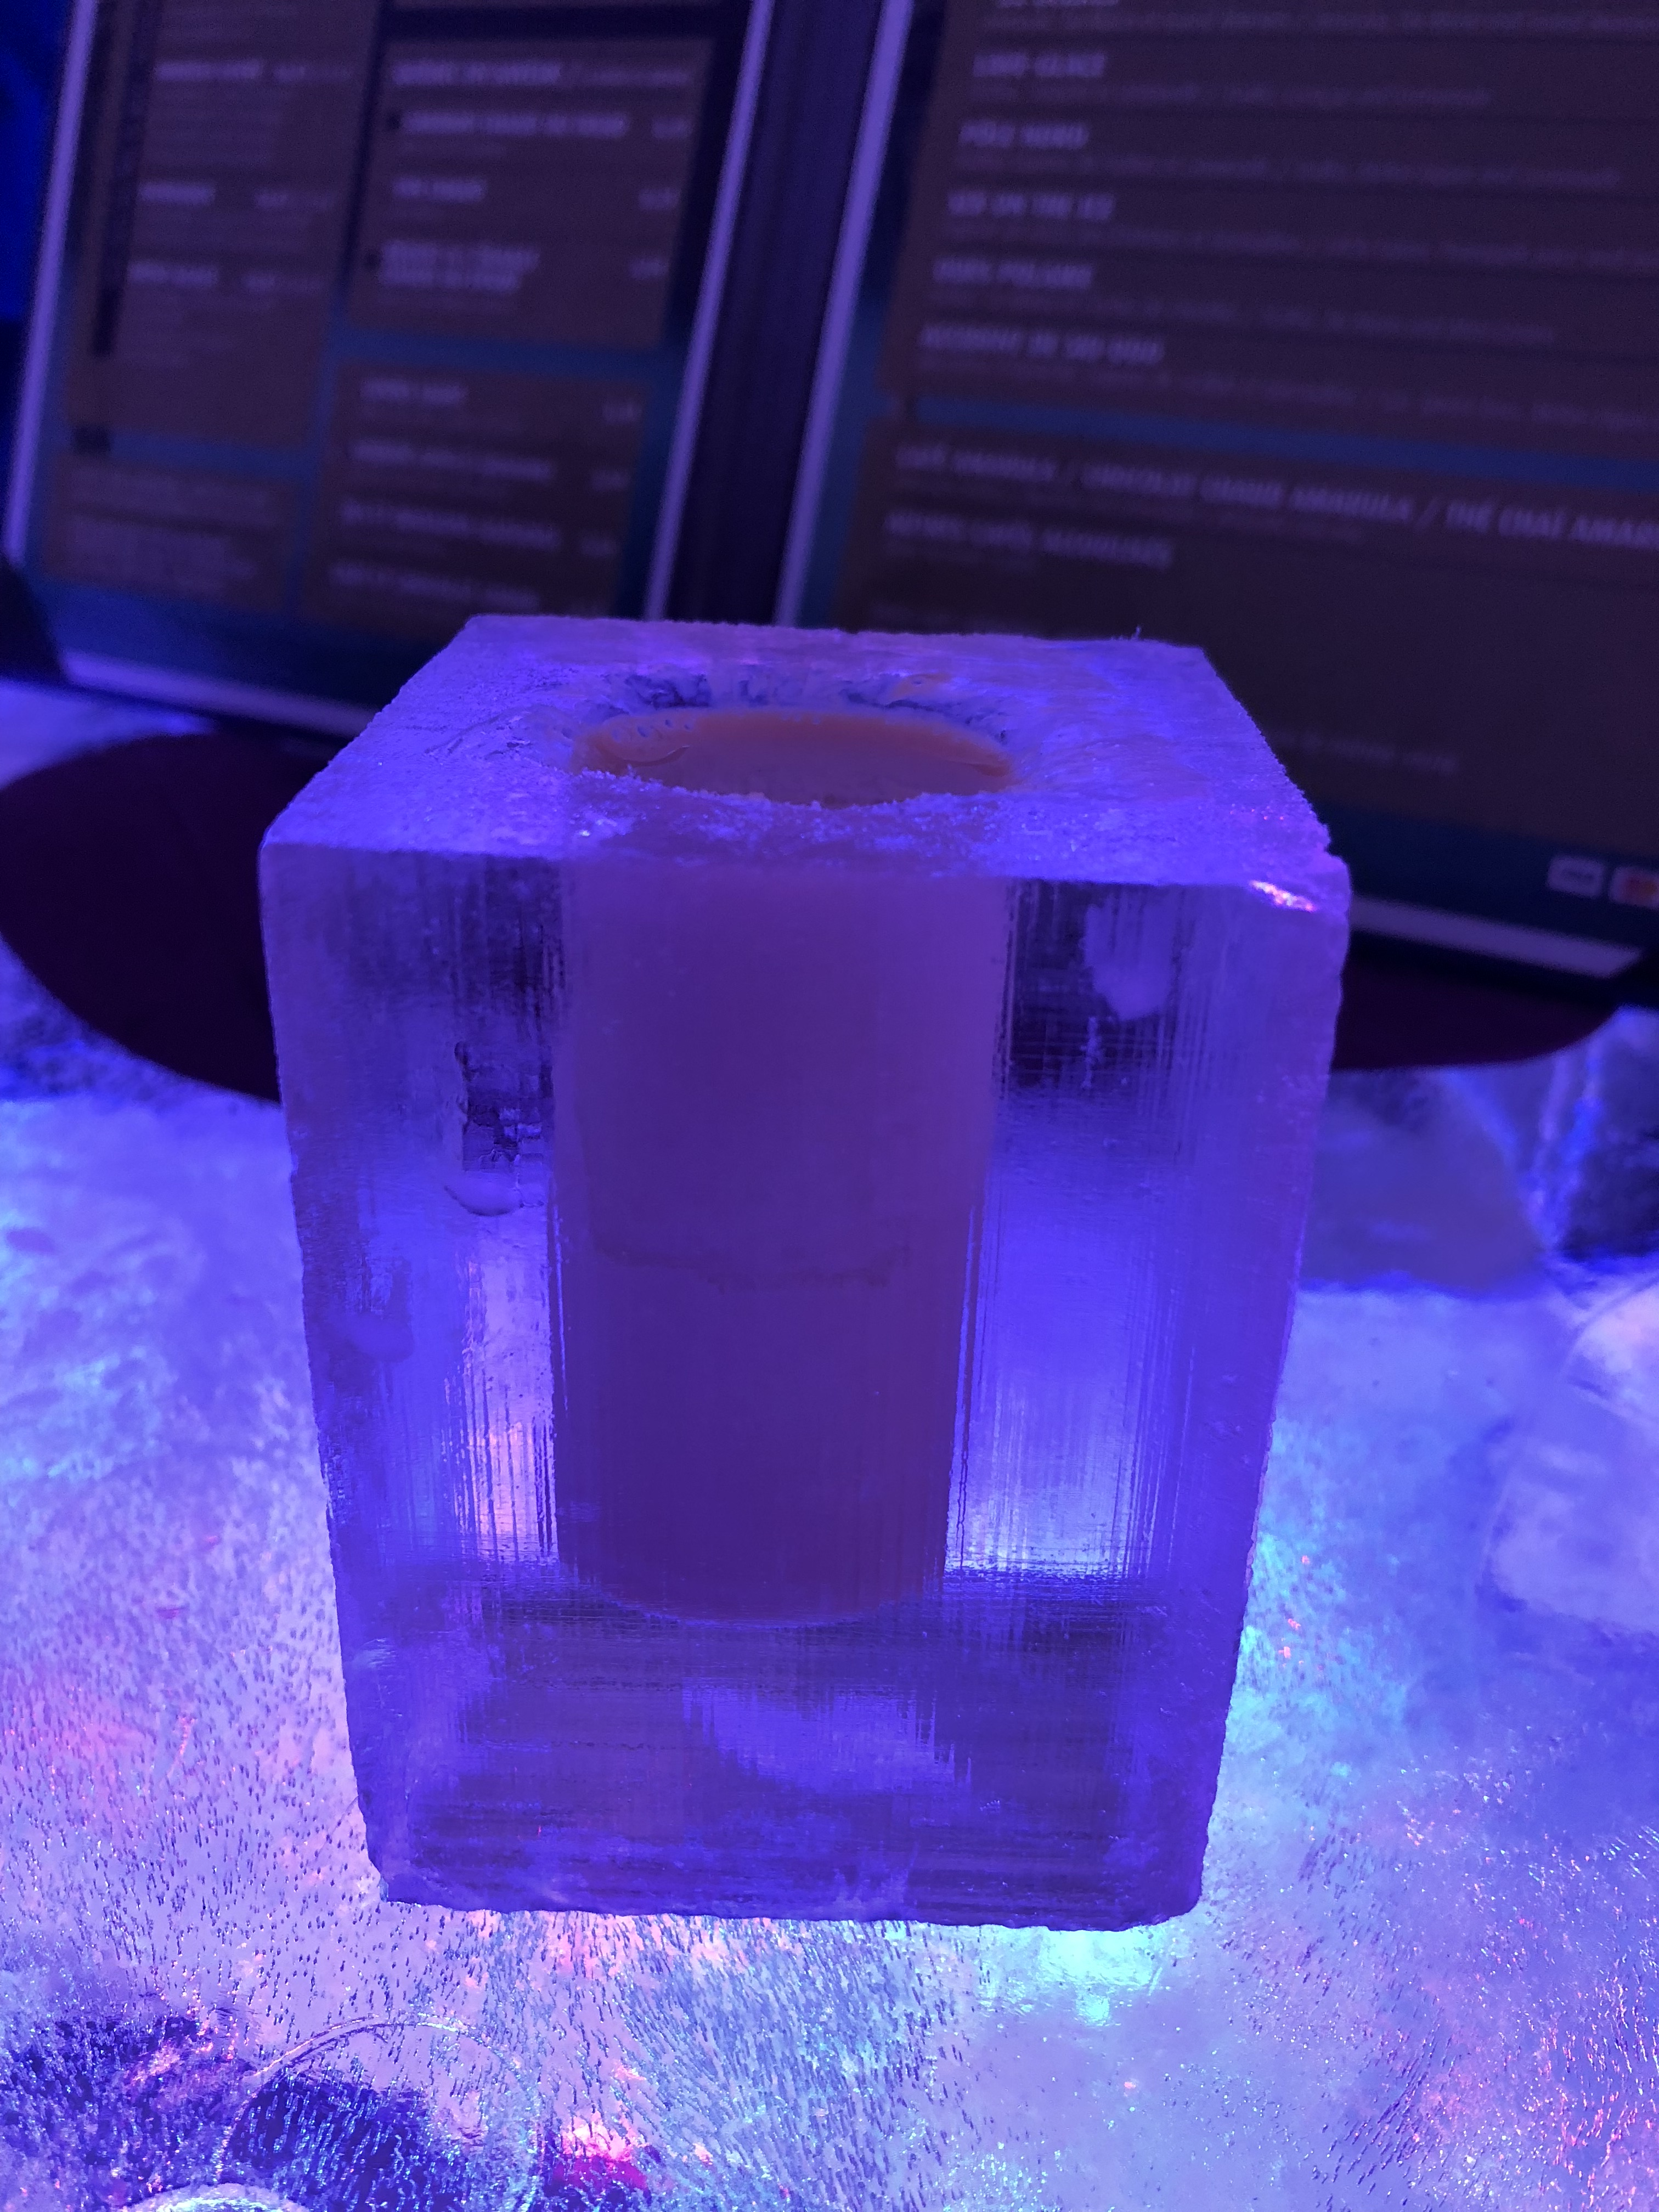 Cocktail in an ice glass at Hôtel de Glace in Quebec